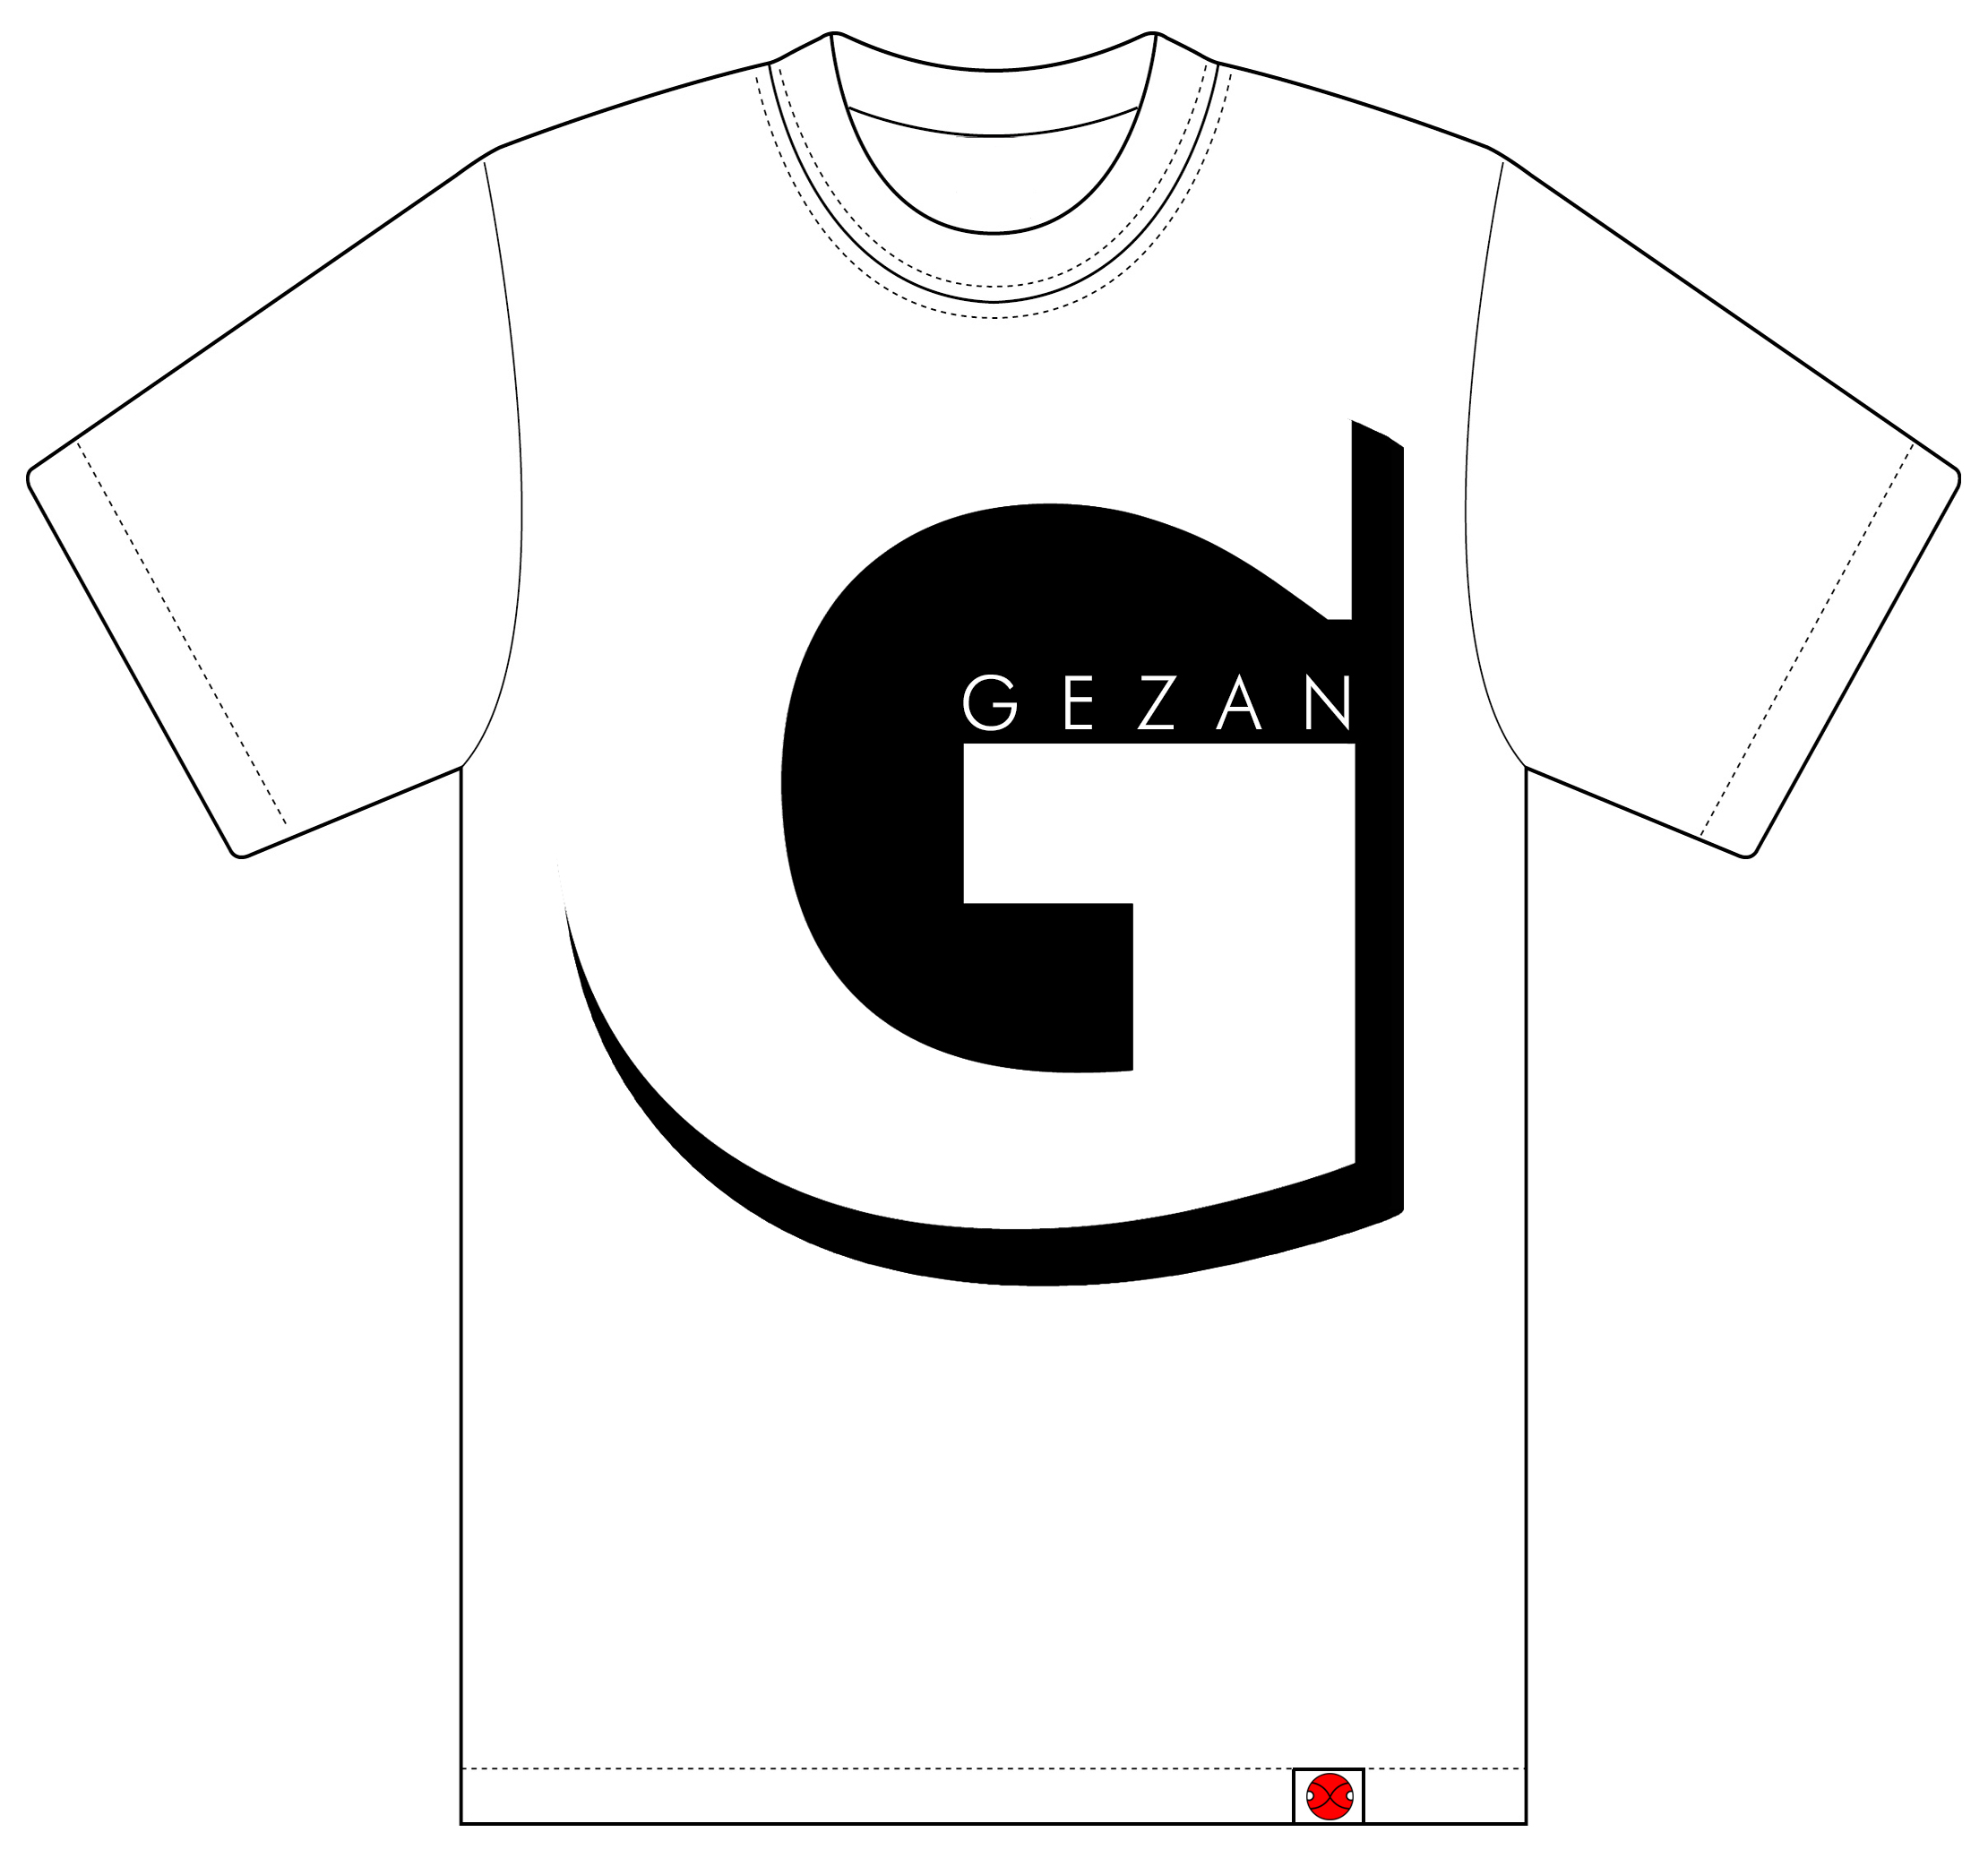 NEW GEZAN 『BIG G』T-shirts 発売